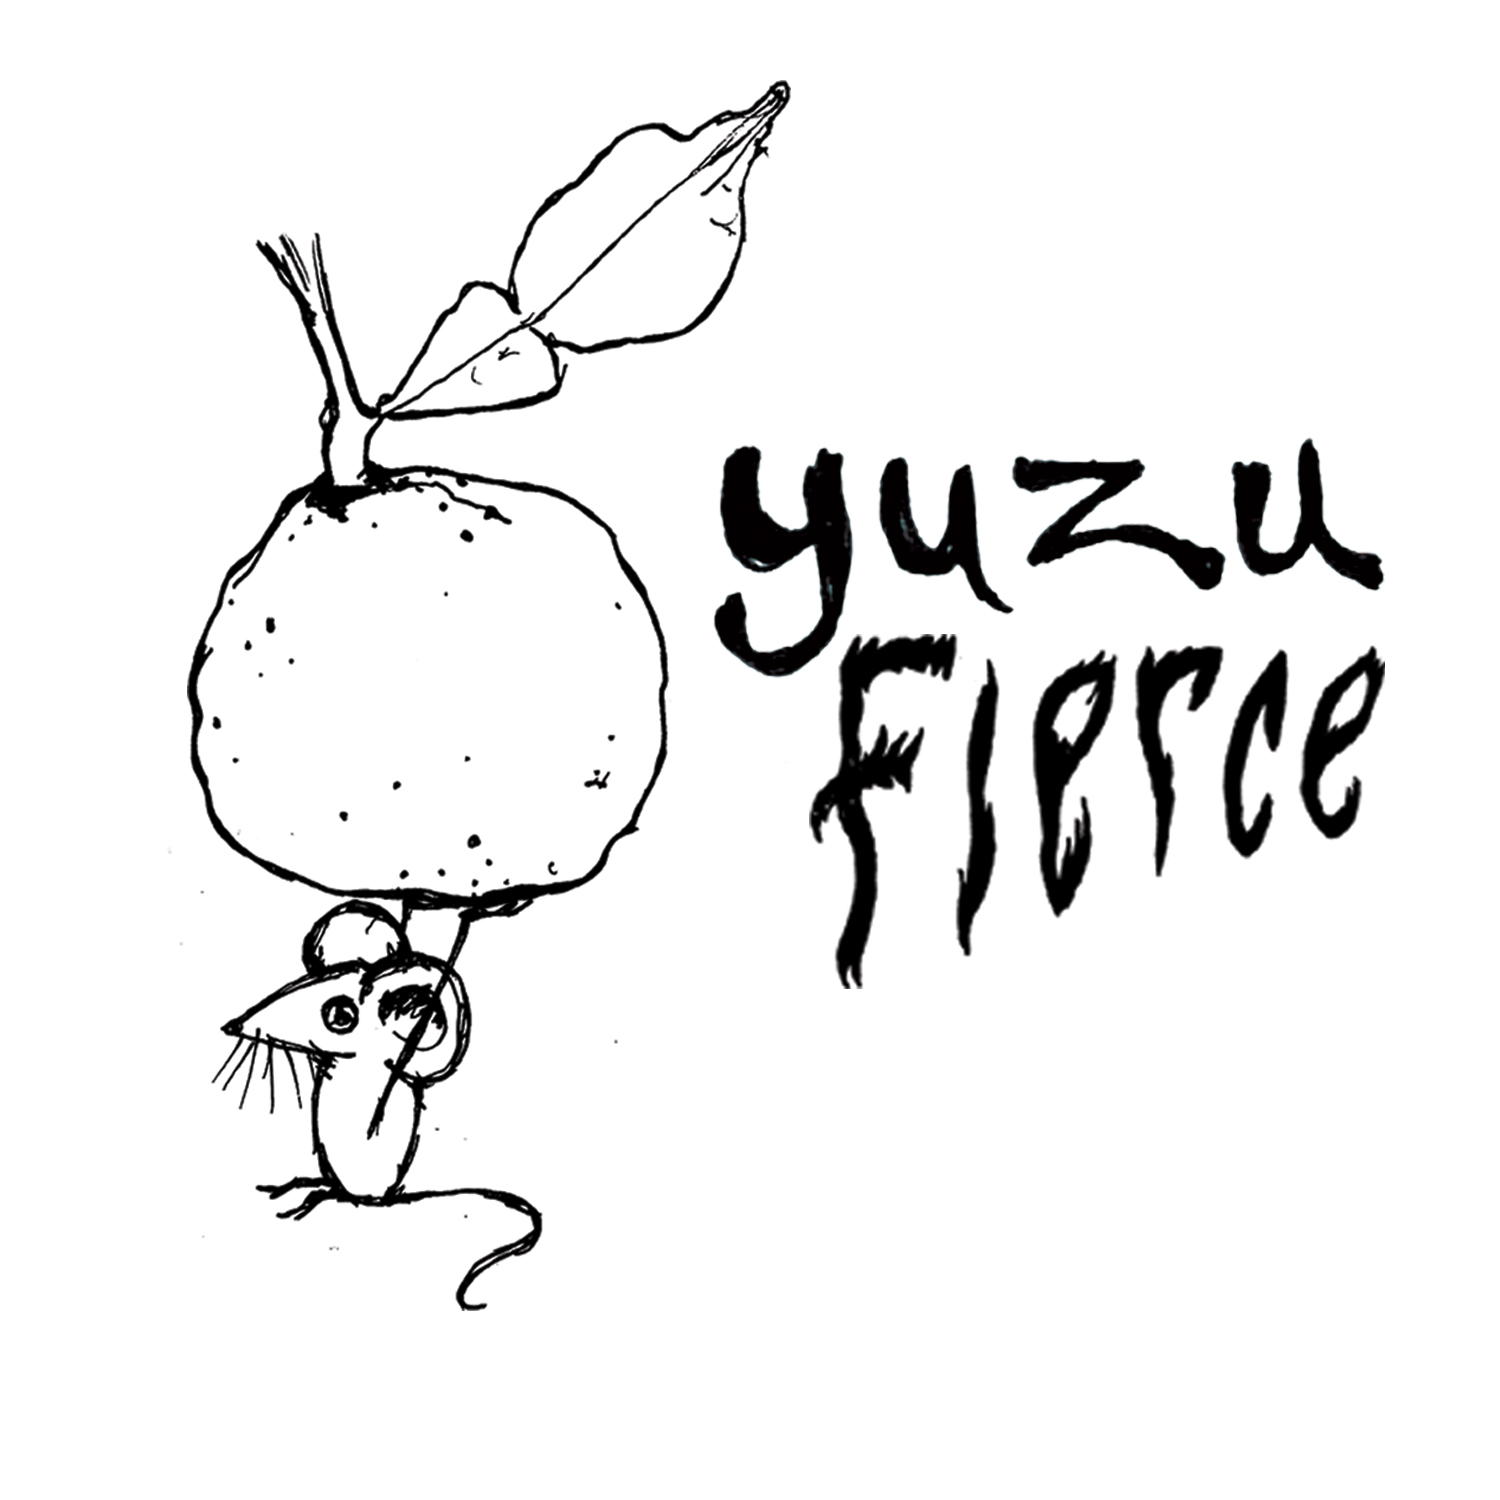 YUZU_FIERCE_keg_cap.jpg